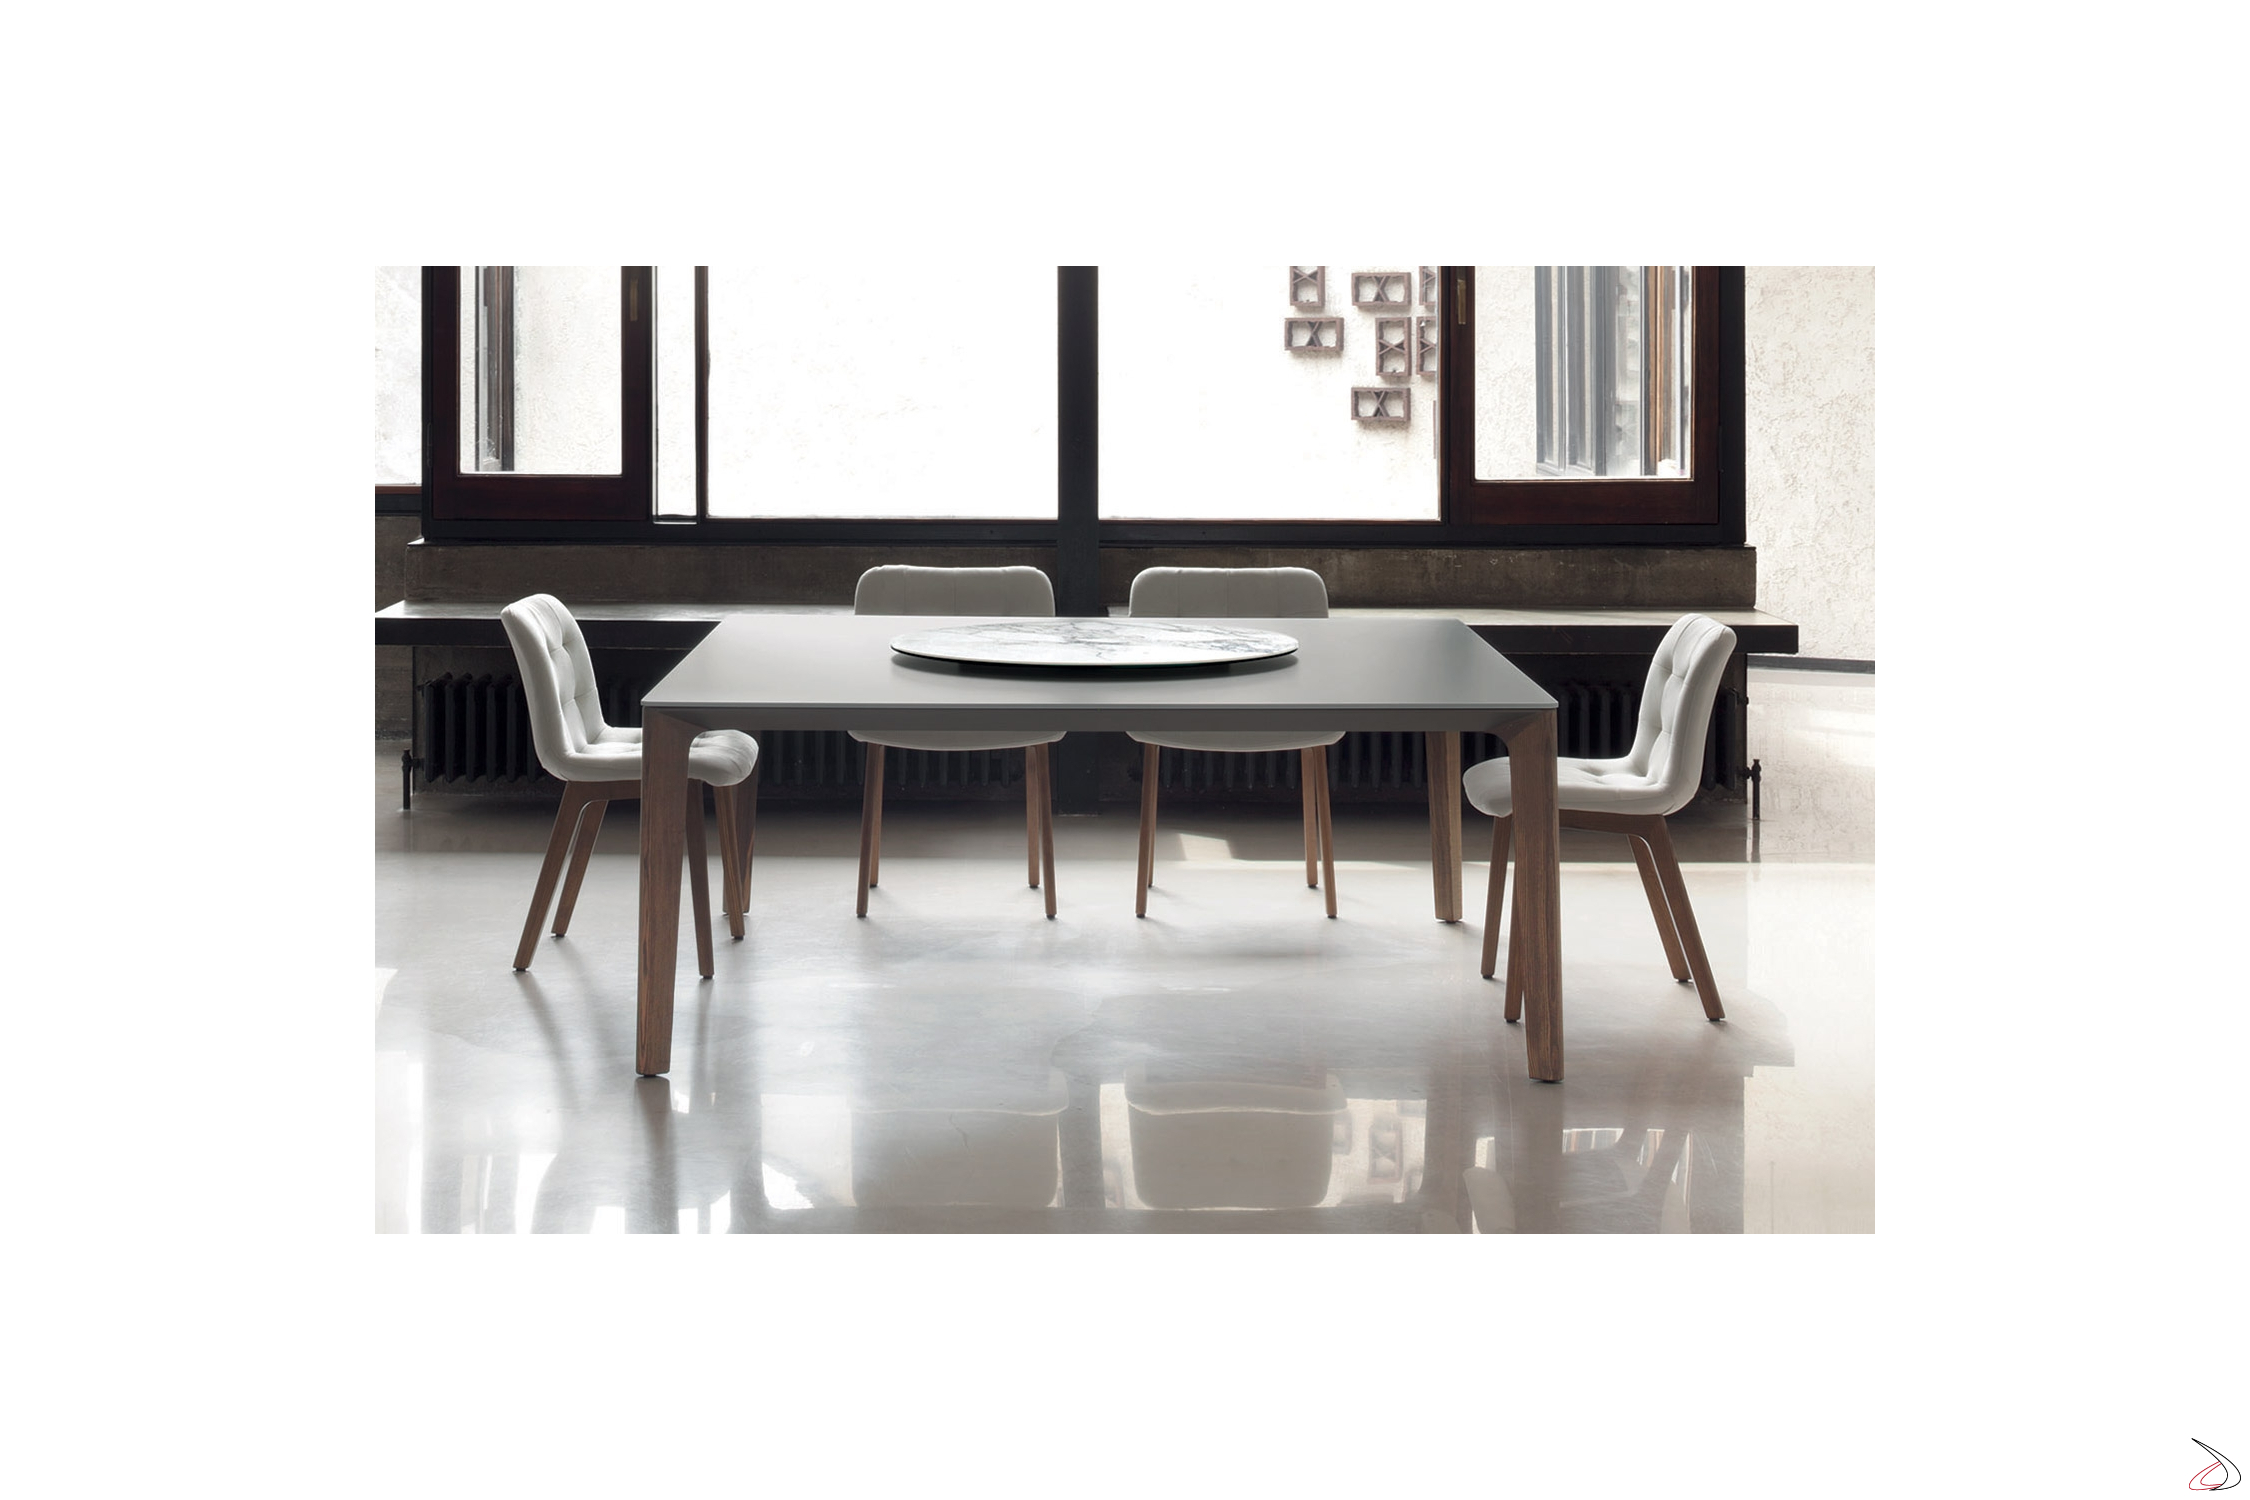 Tavolo Quadrato In Legno Allungabile.Versus Table For Living Room In Aluminum Solid Wood And Crystal